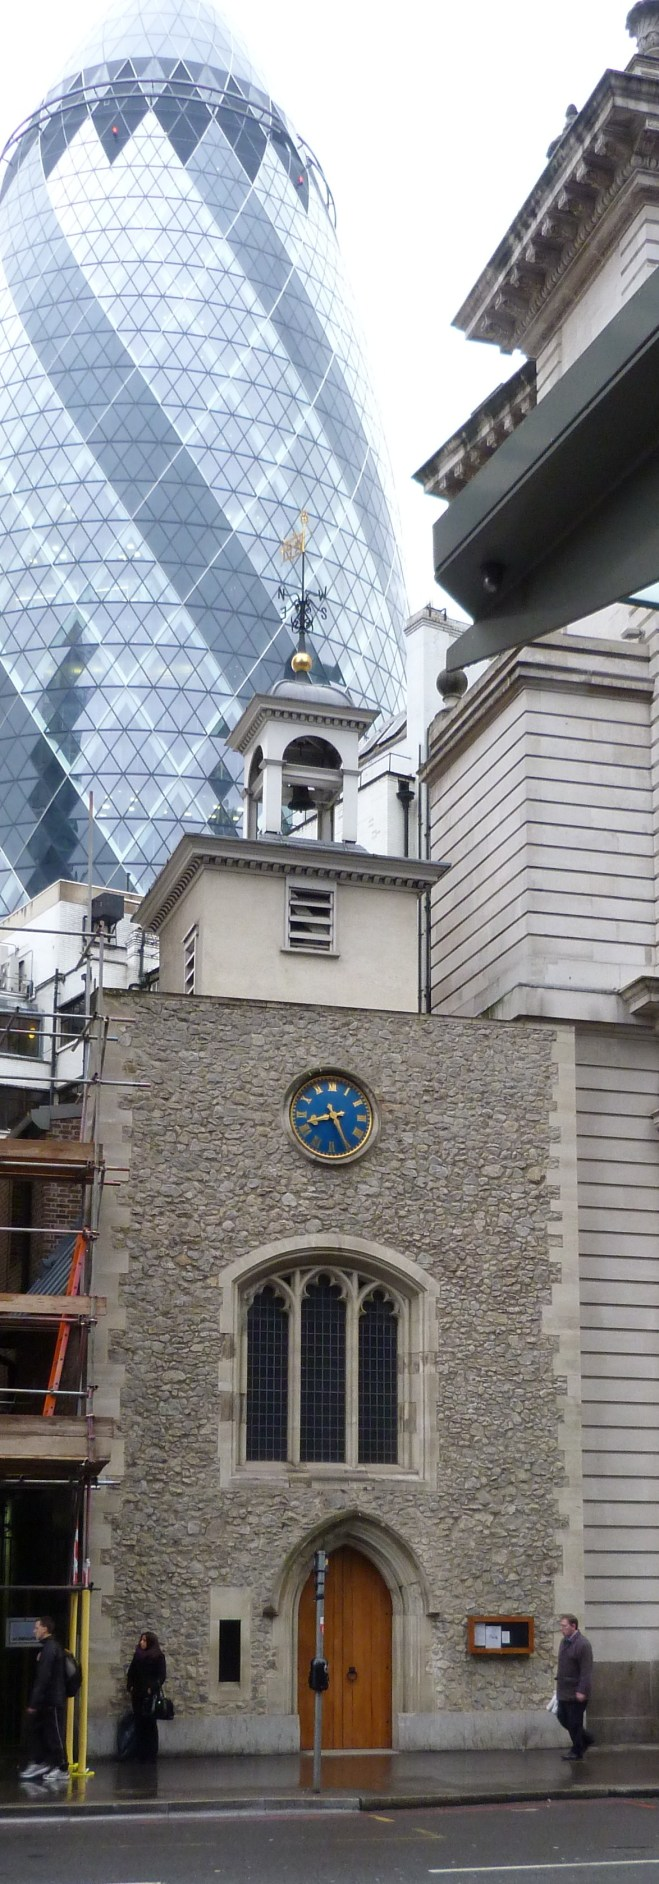 Church with Gherkin in background.JPG